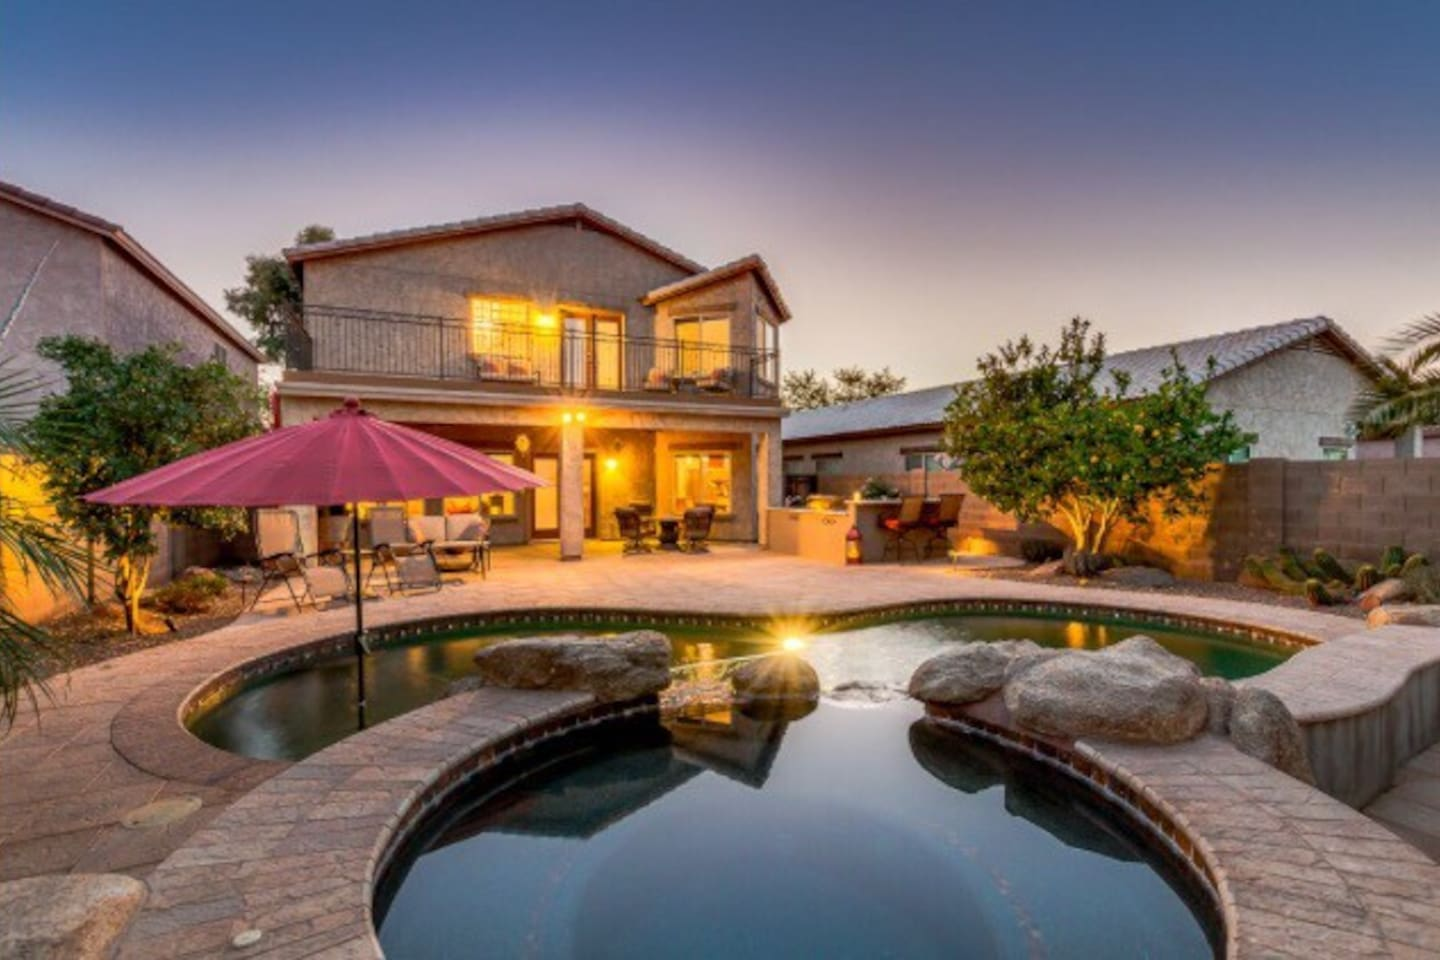 Come to Casa Bliss and soak the world away while you watch the sunset from the back yard.